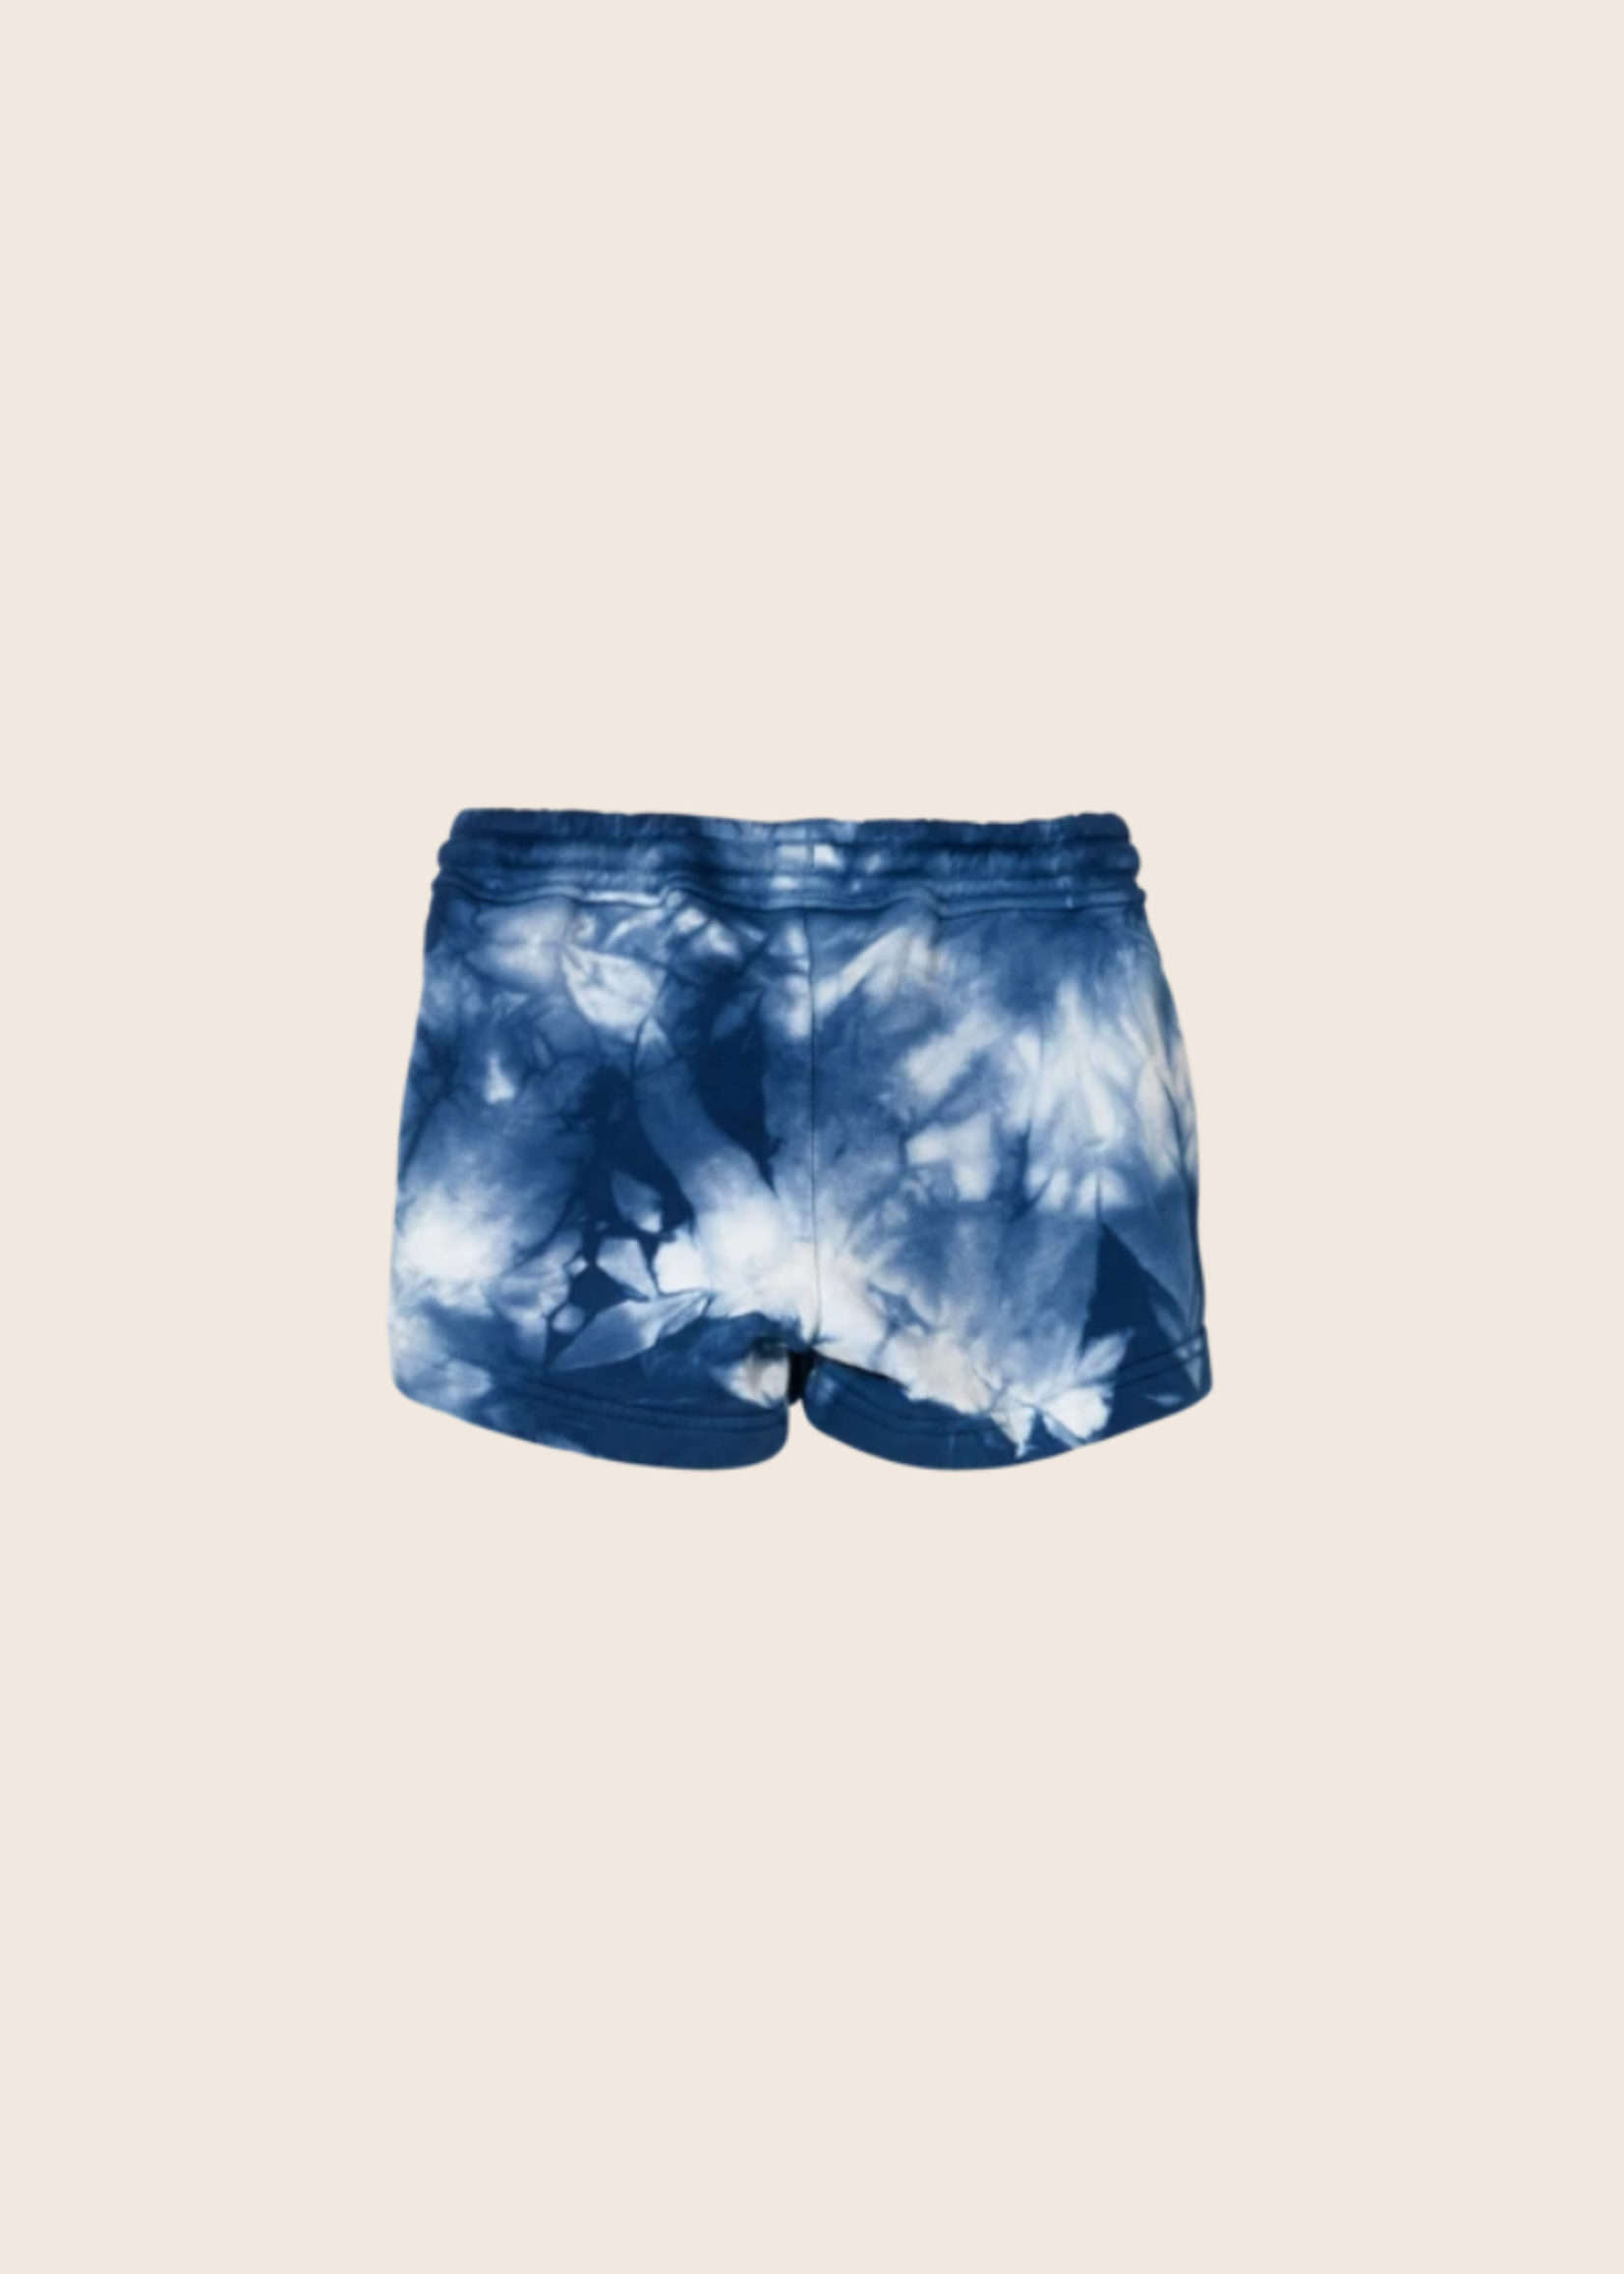 FINGER IN THE NOSE TRINITY Work Blue Tie & Dye - Elasticated Shorts